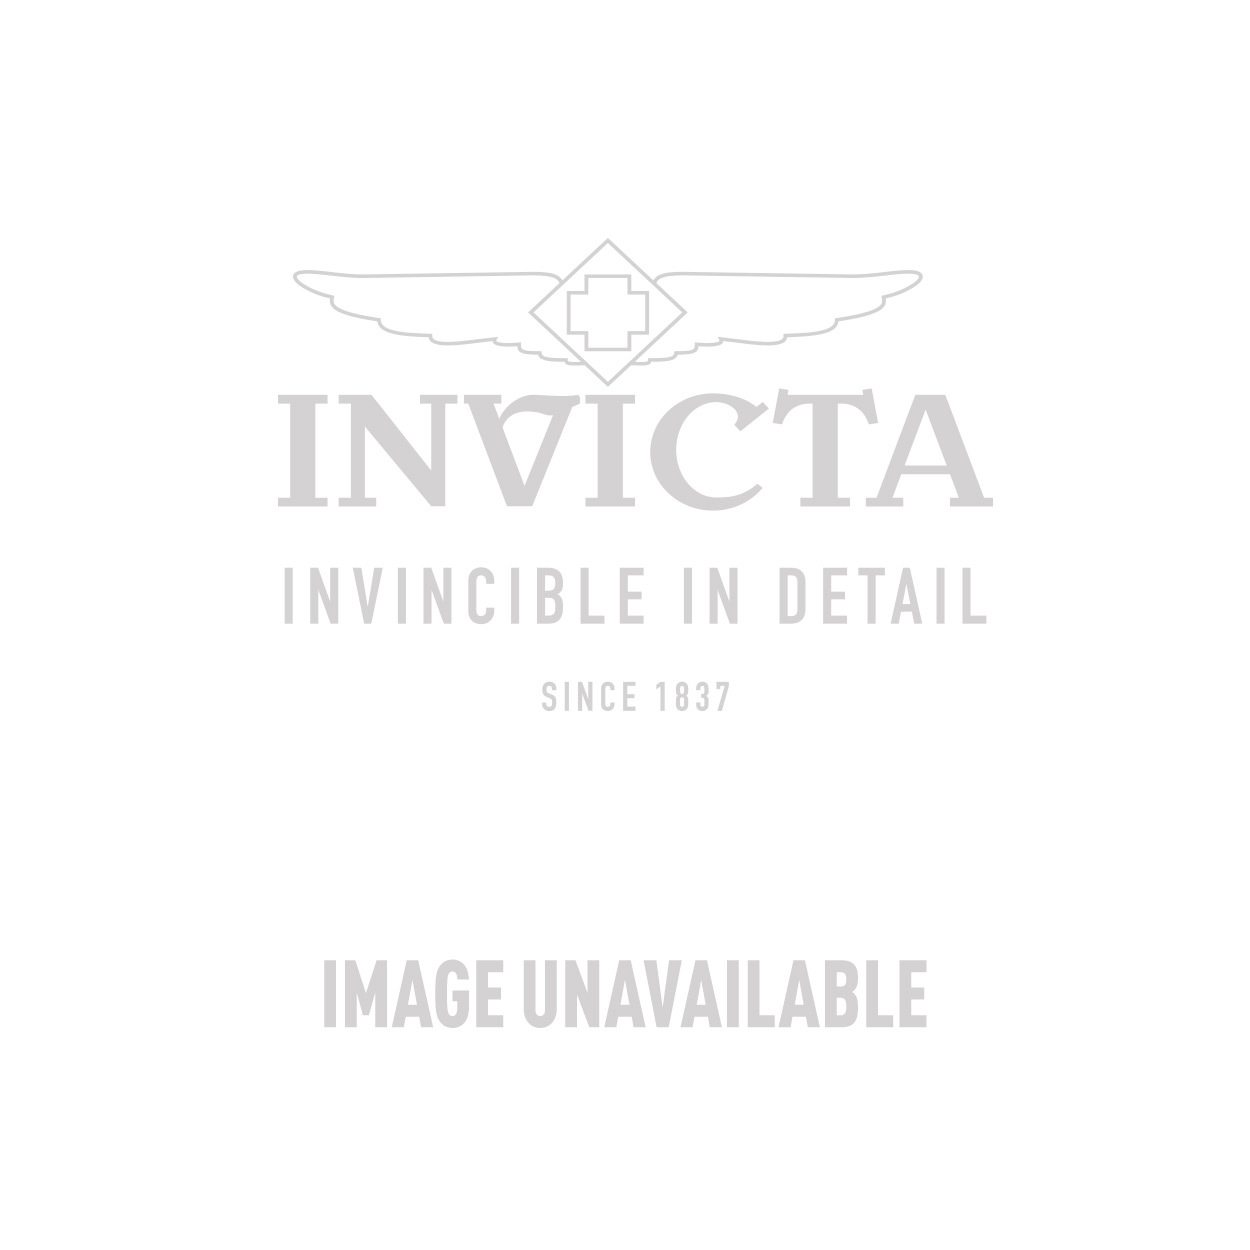 Invicta Disney Limited Edition Men's Quartz 47mm Black Case Black, Gunmetal, Silver Dial - Model 22735